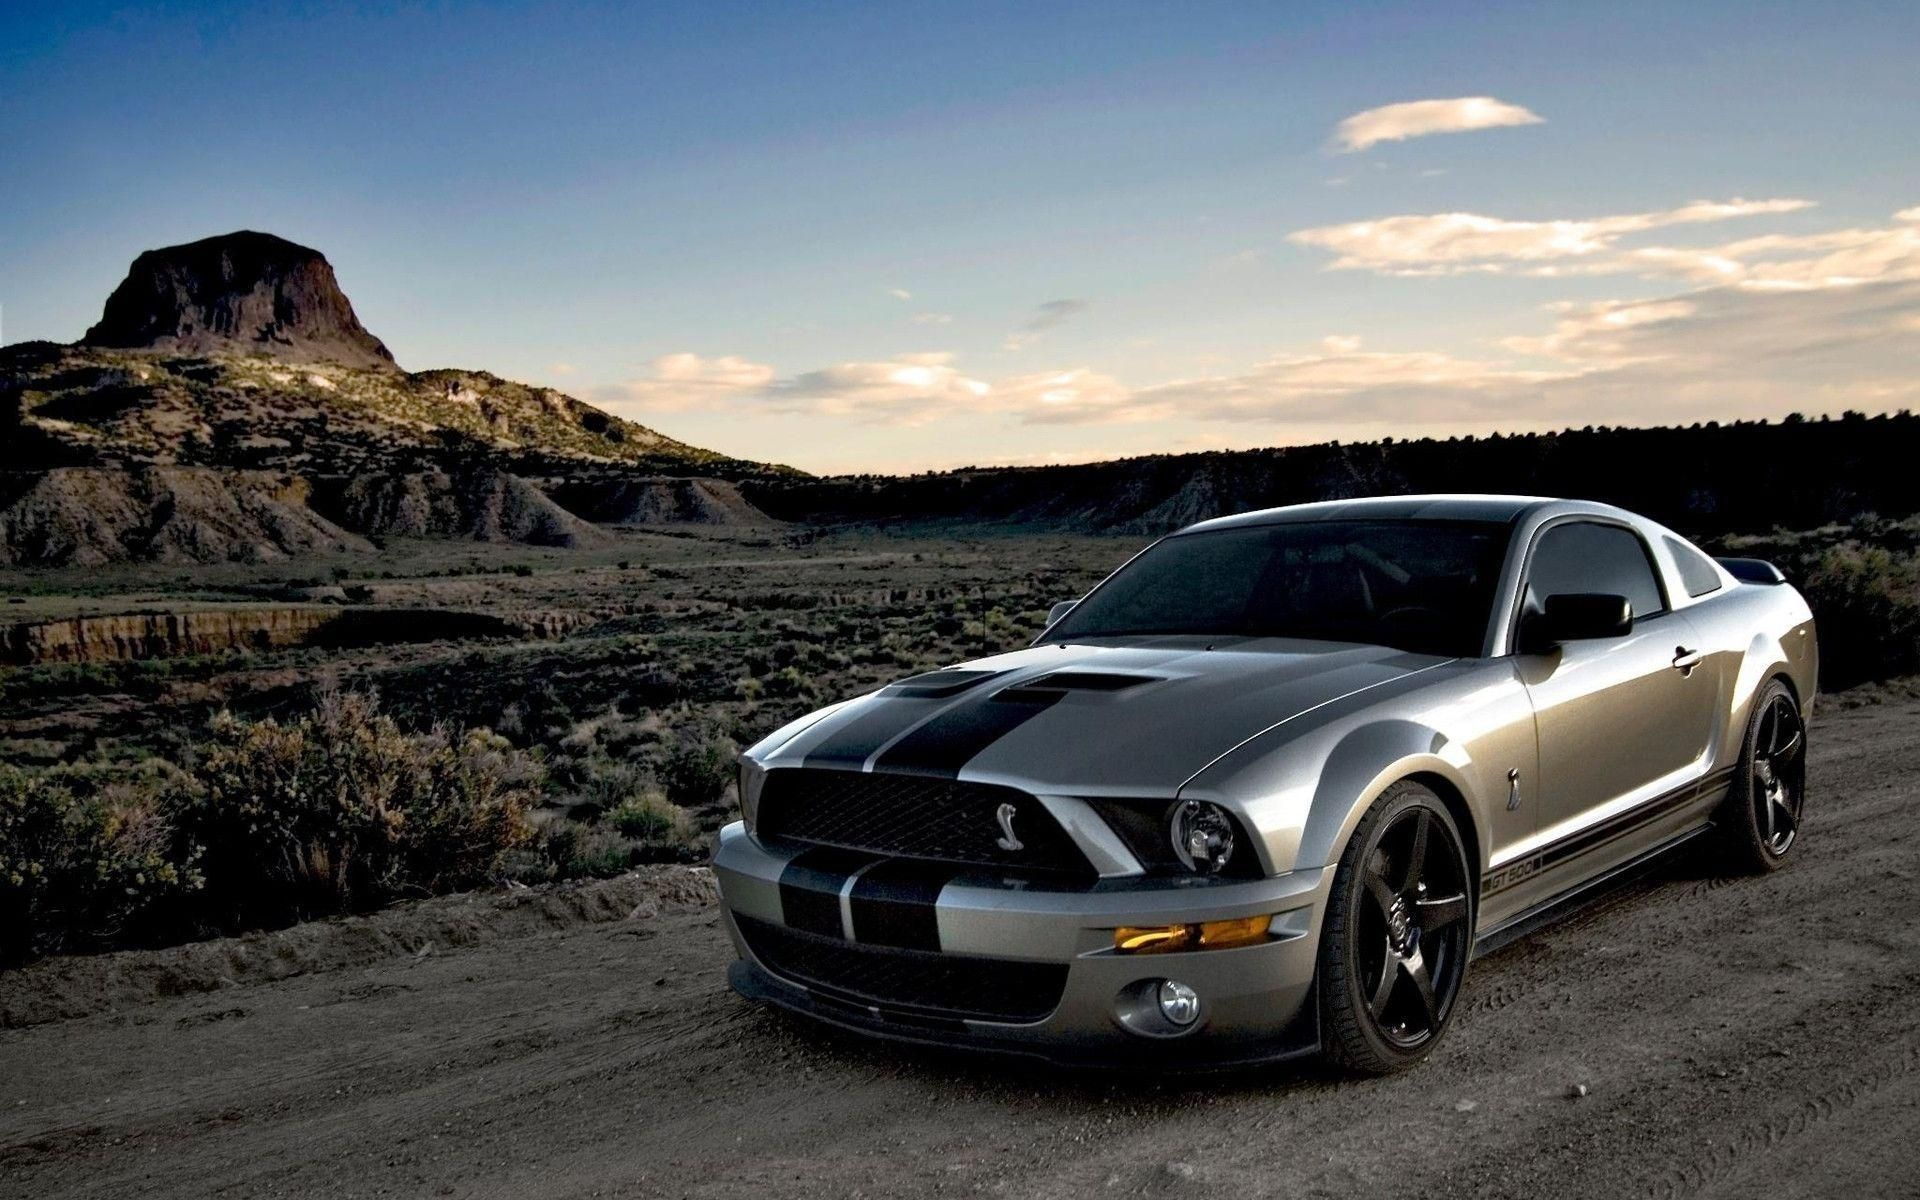 Ford Mustang Hd Wallpapers 1920x1080 Download